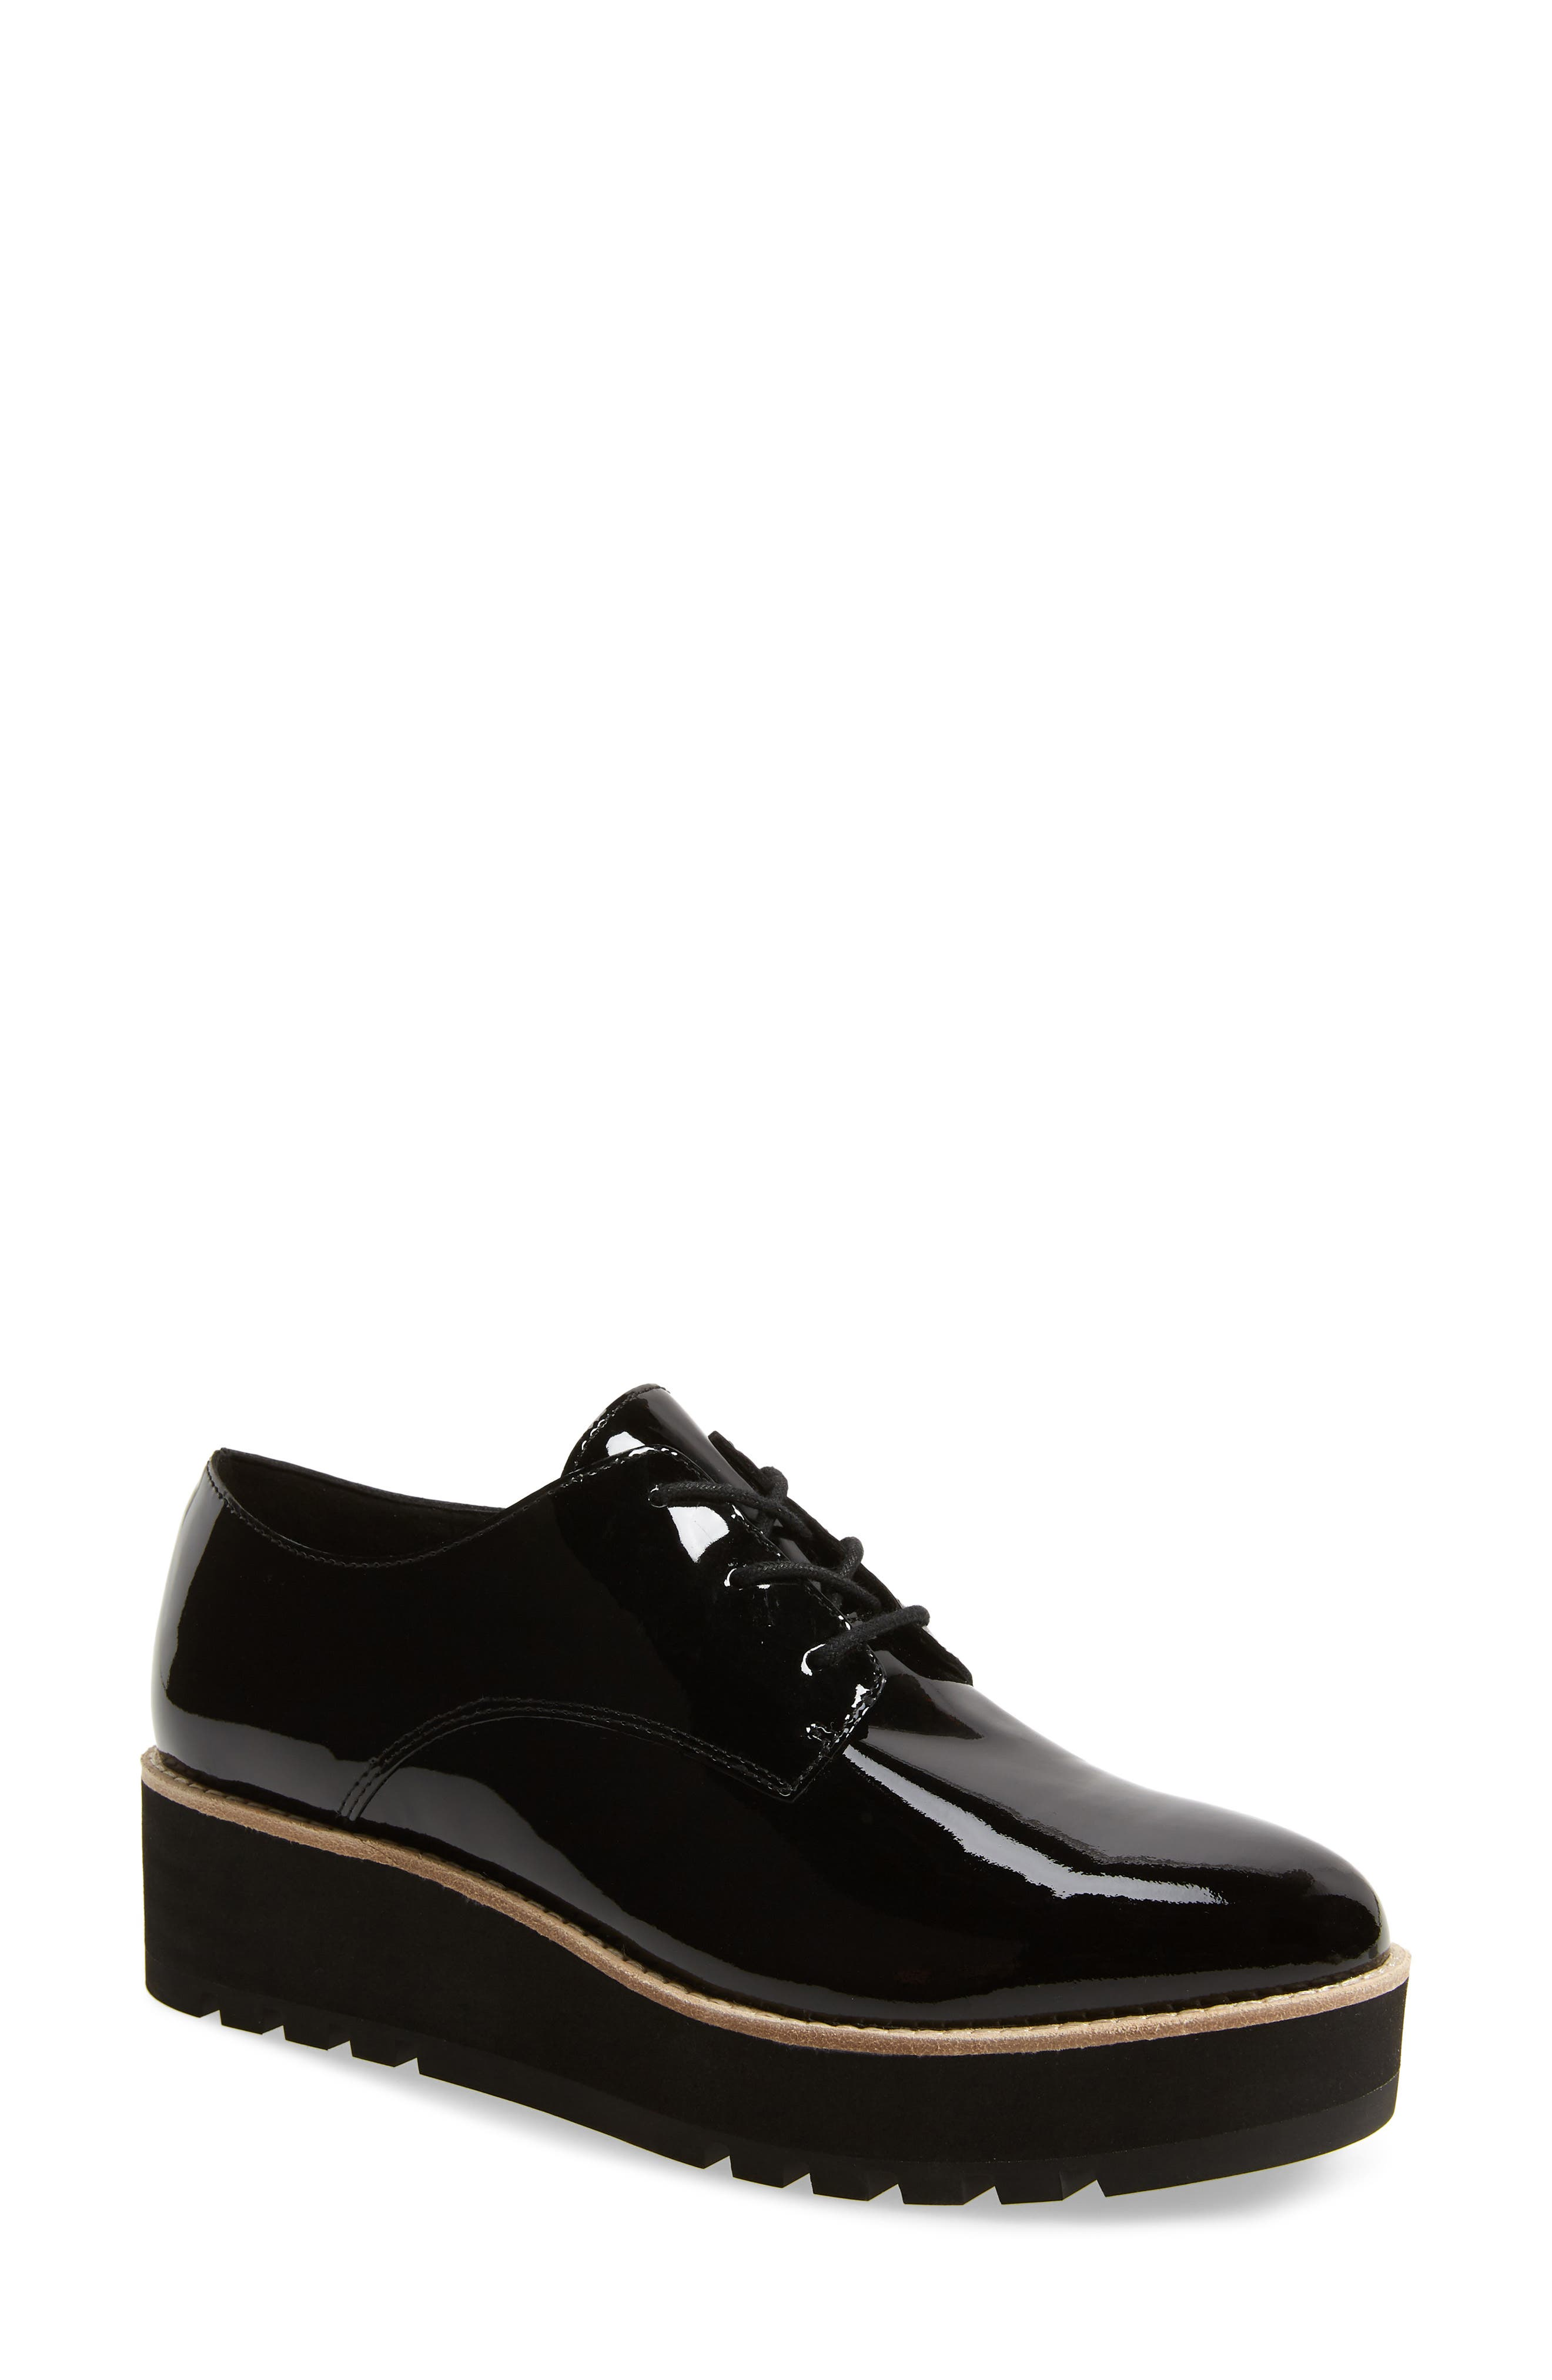 Eddy Derby,                         Main,                         color, BLACK PATENT LEATHER